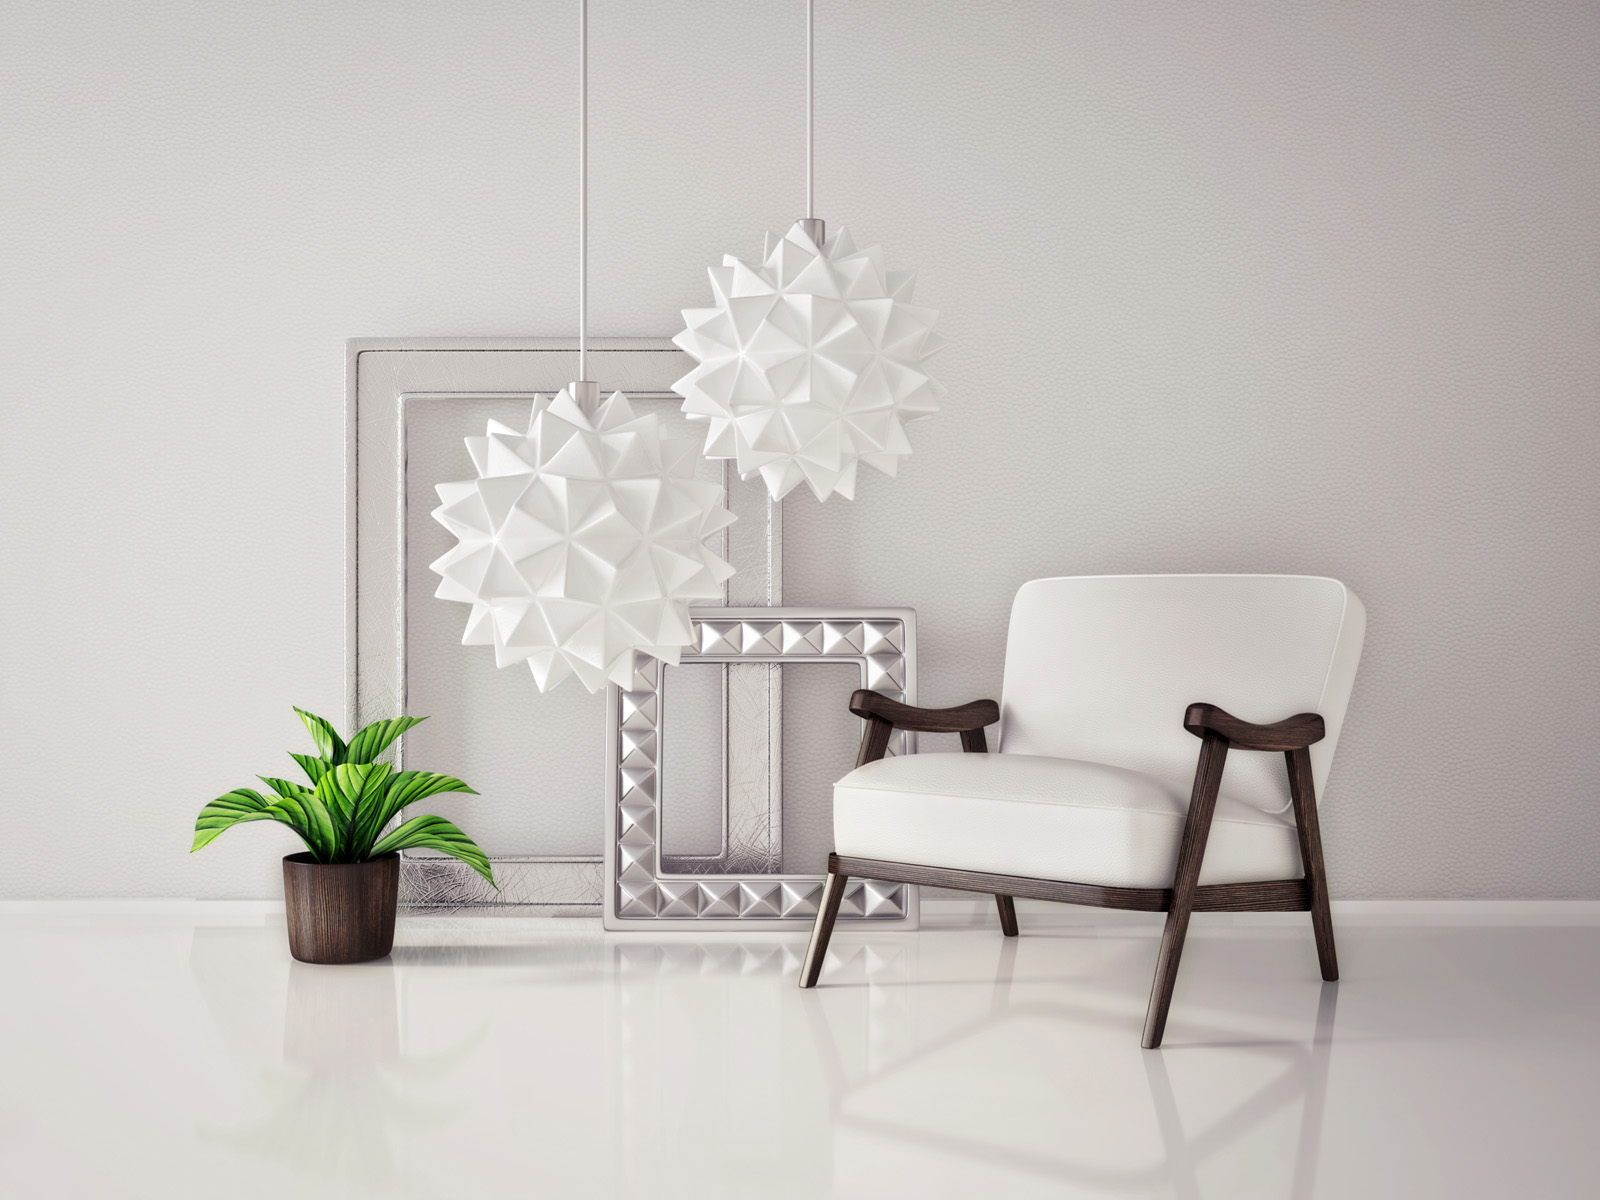 Ornaments frame chairs and flower pots 51424